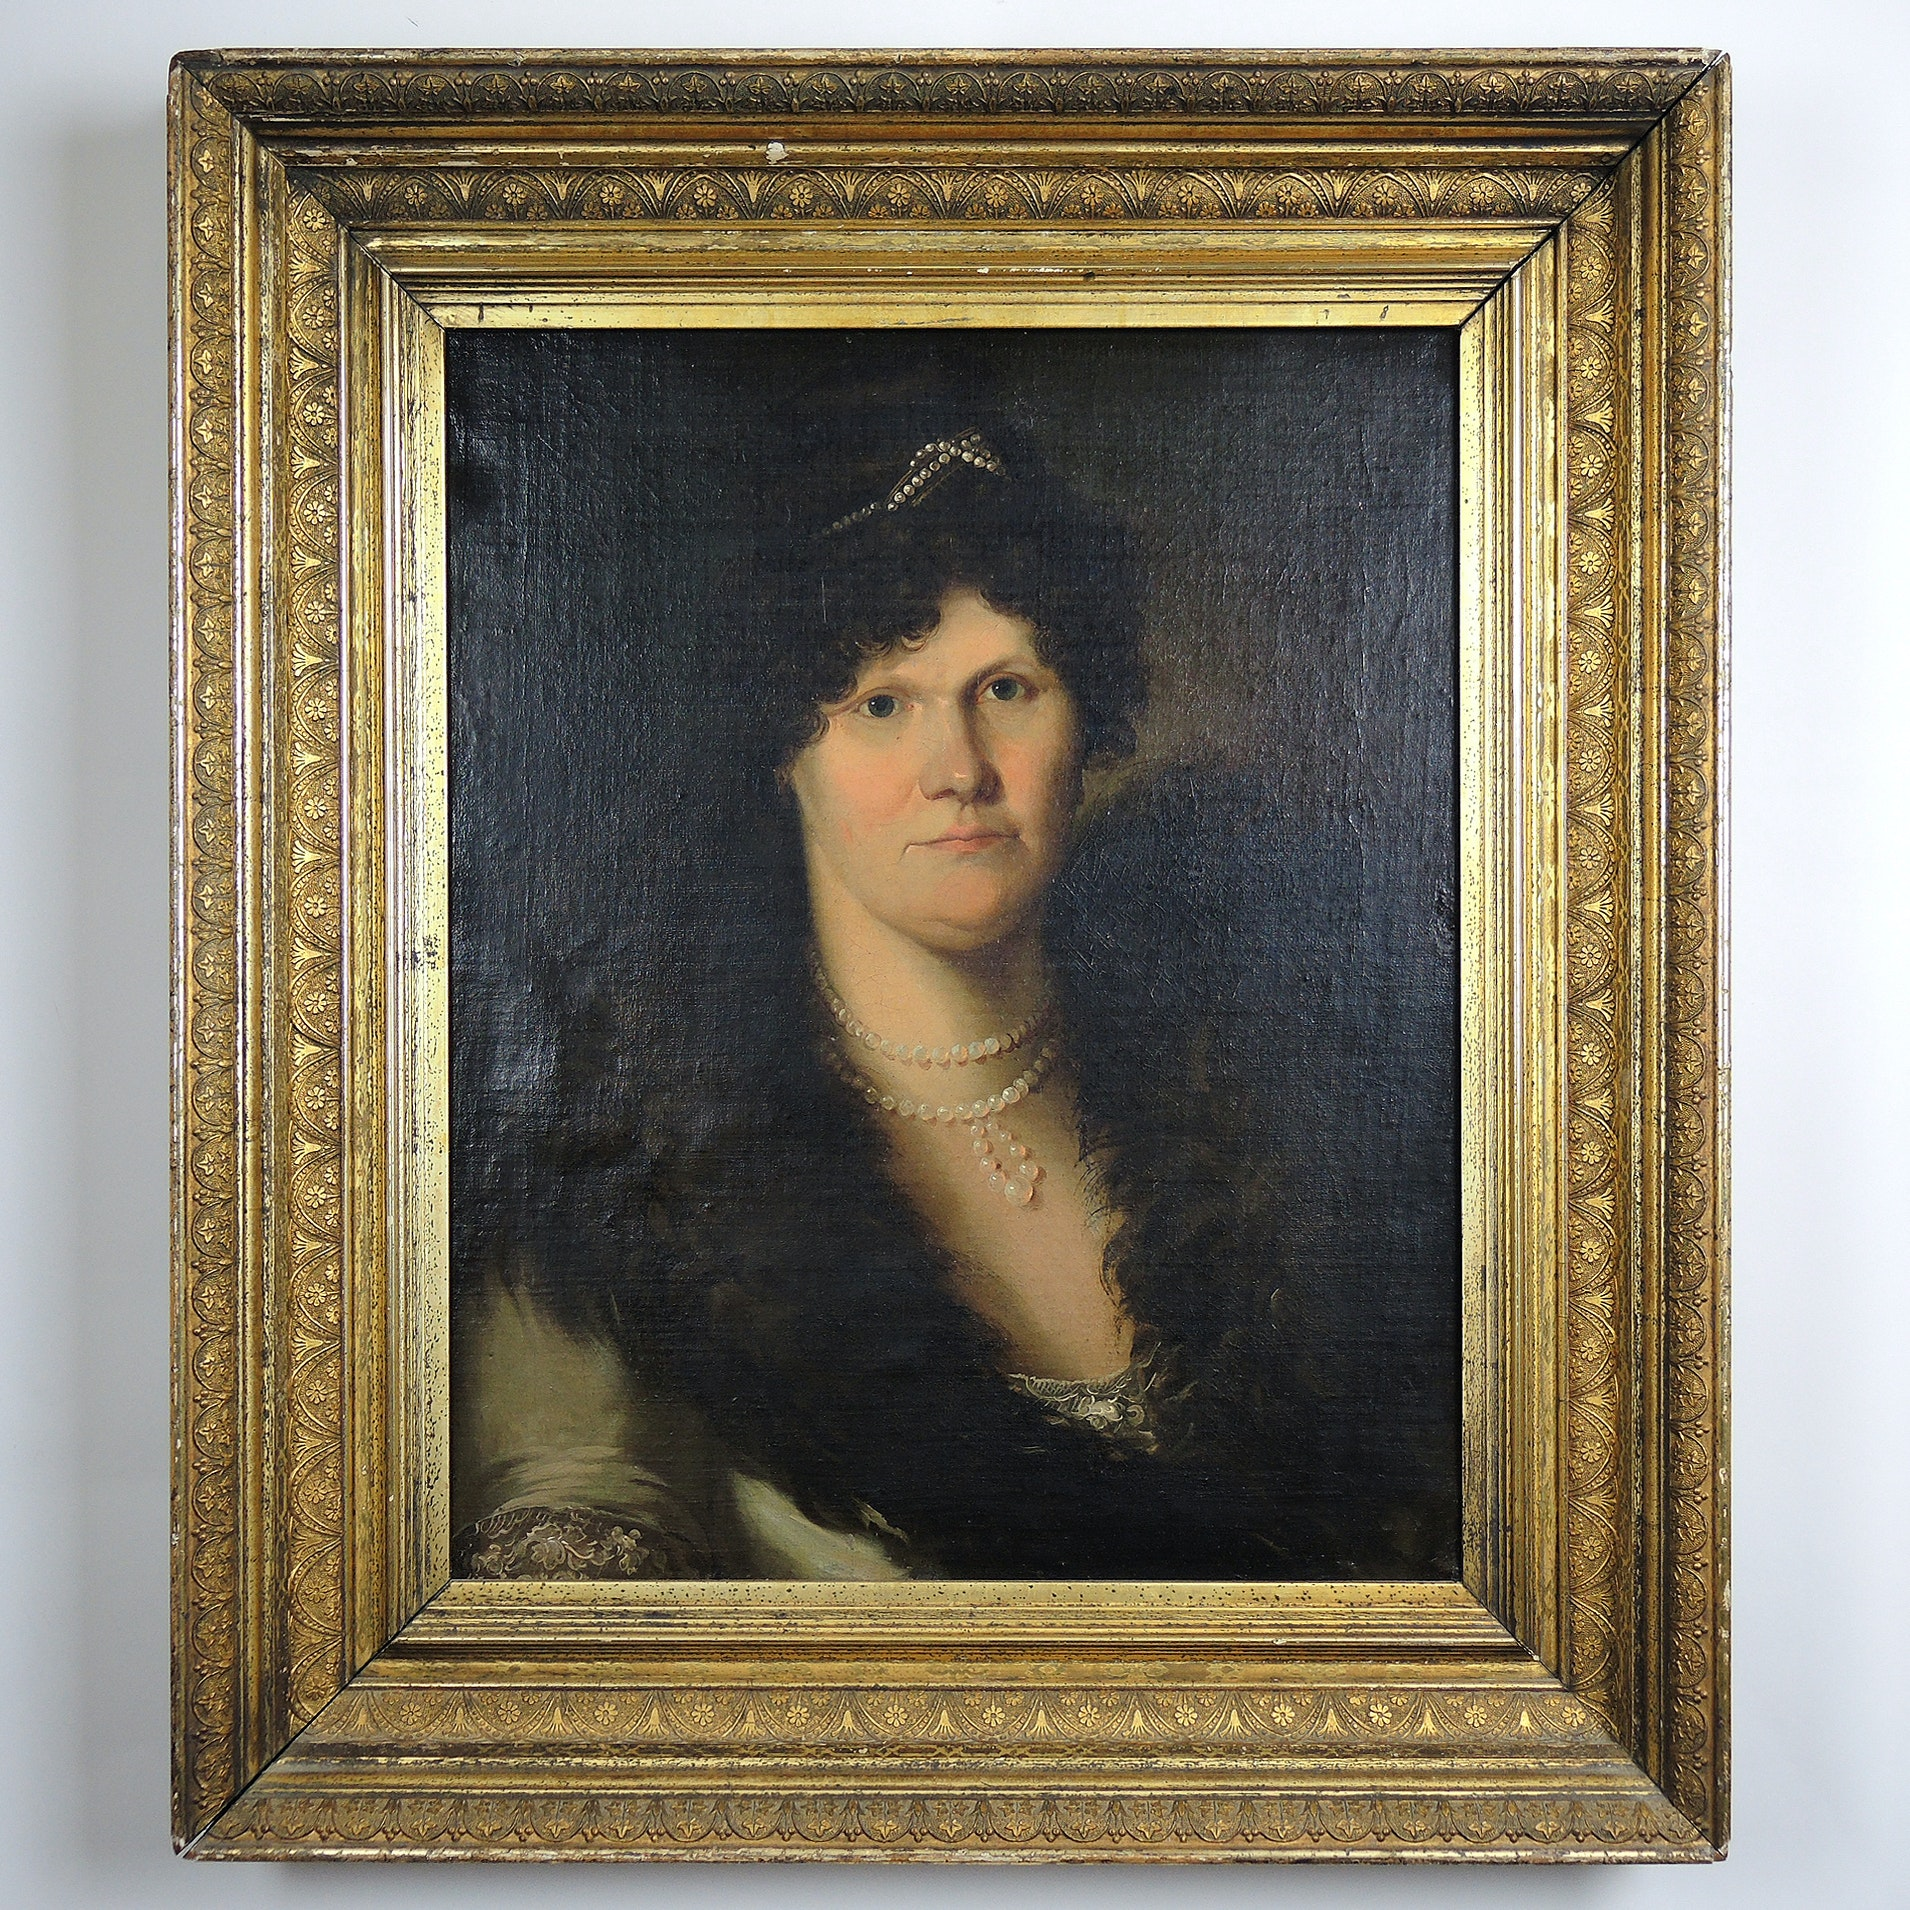 Early 19th Century Oil Painting on Linen Portrait of Lady with Feather Stole